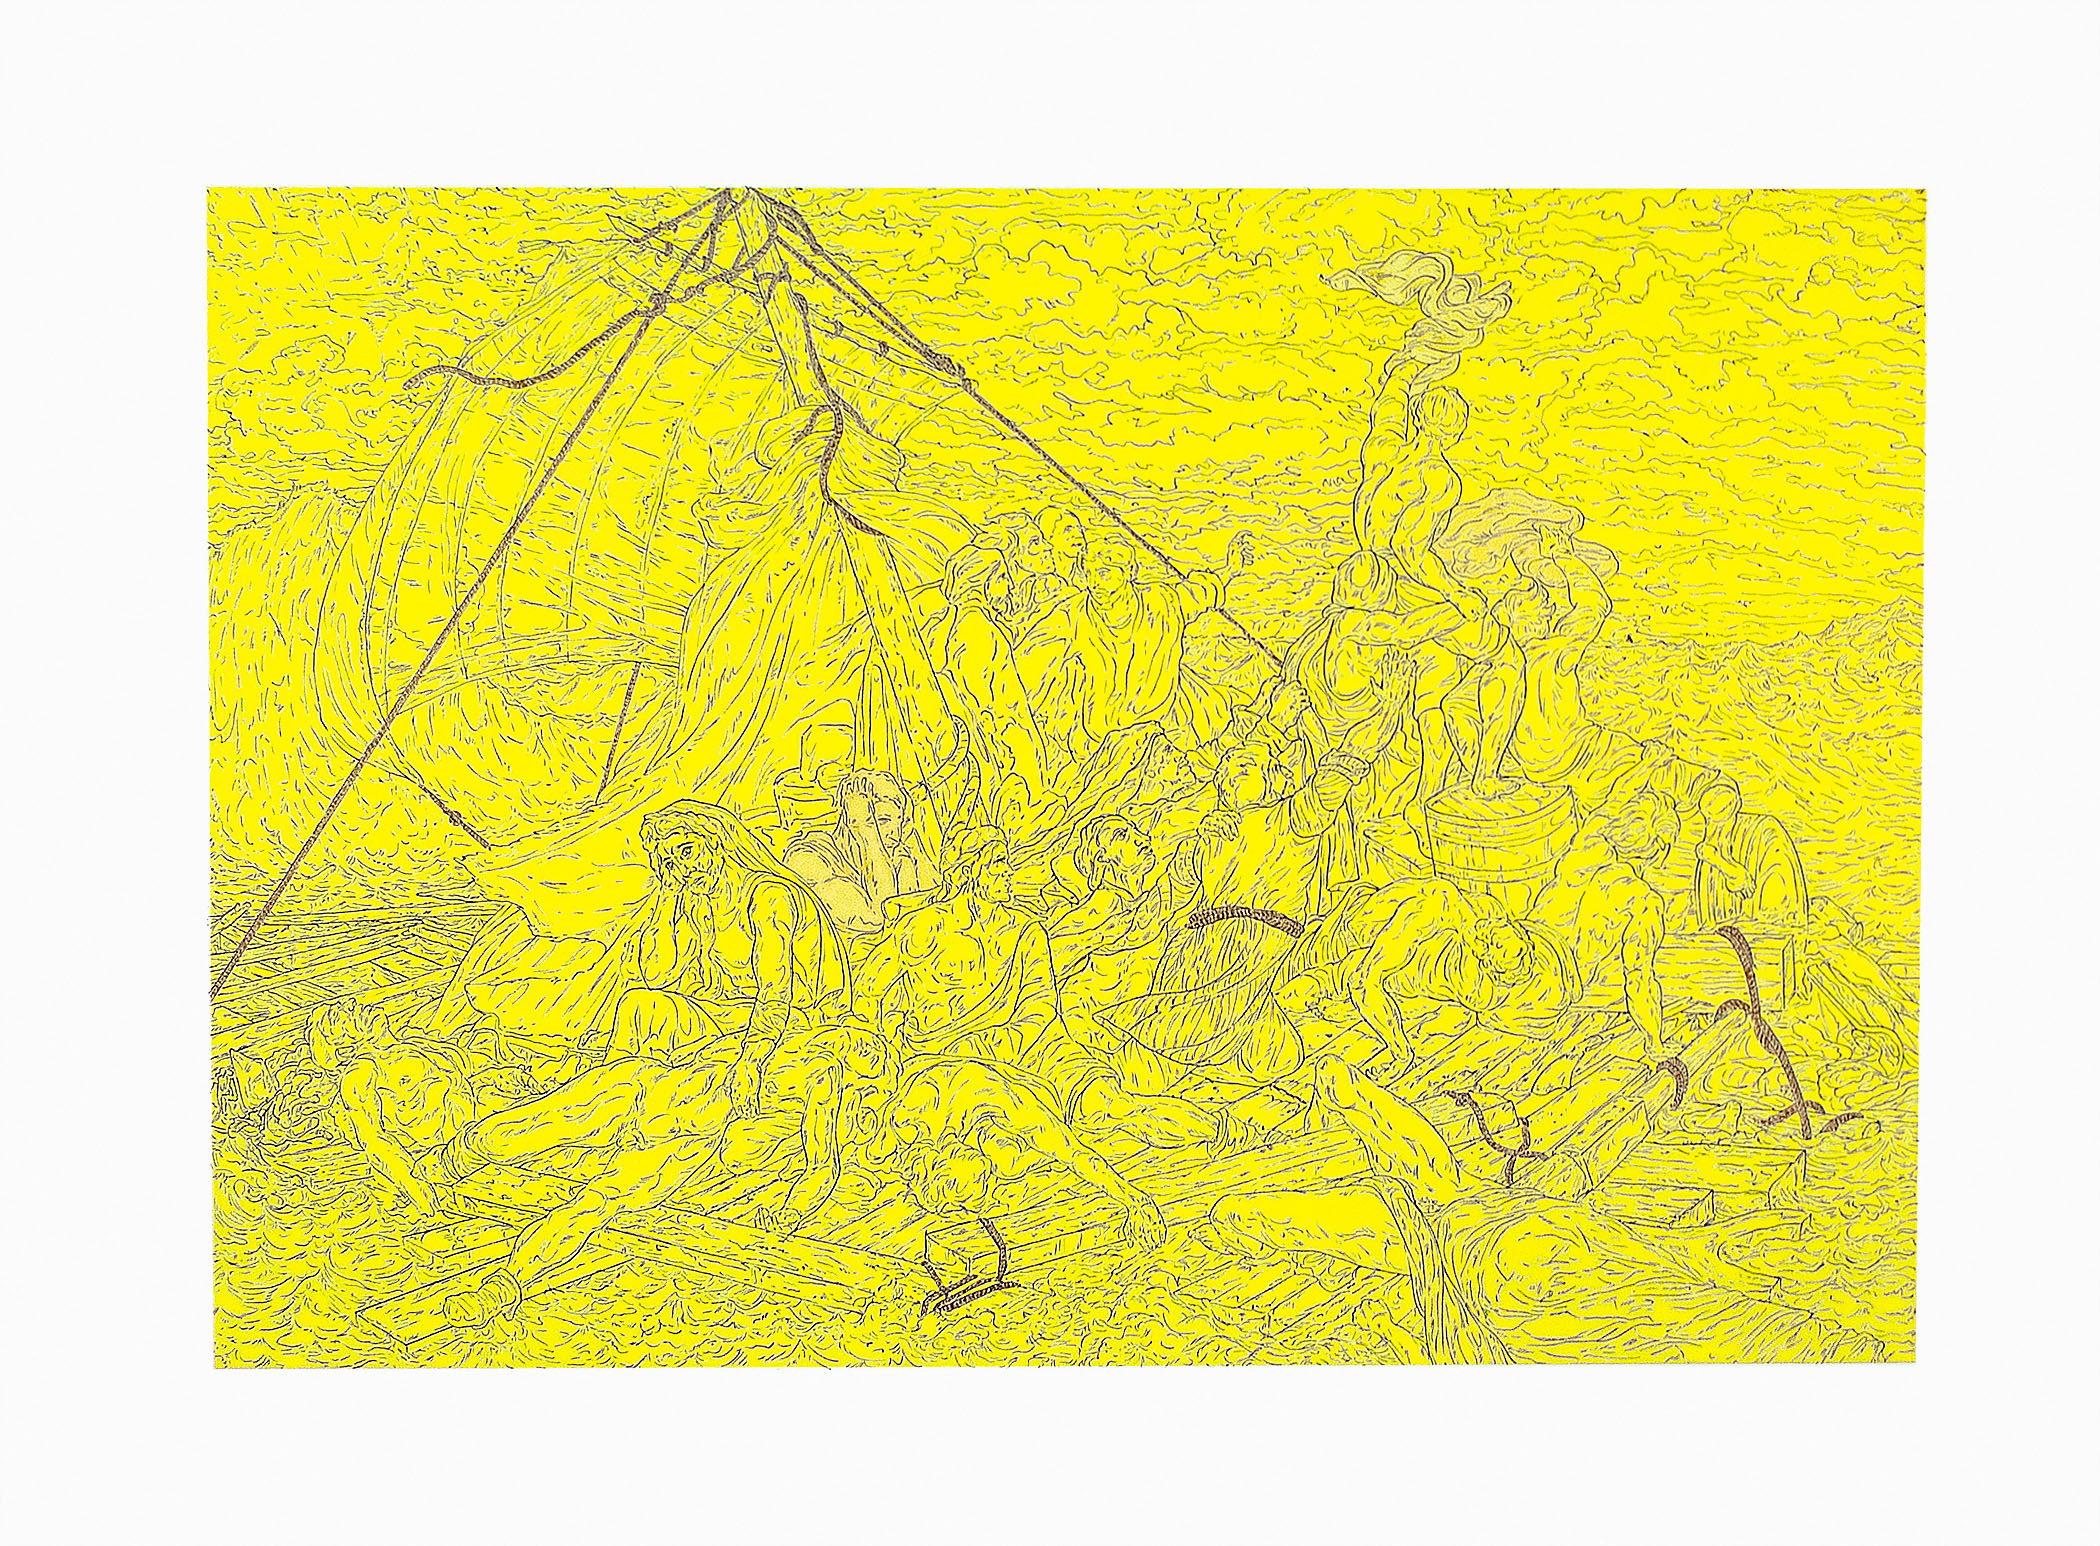 09 STA-2011-0007 Untitled (Raft of the Medusa) 2011_24.75 x 32.75 inches.jpg